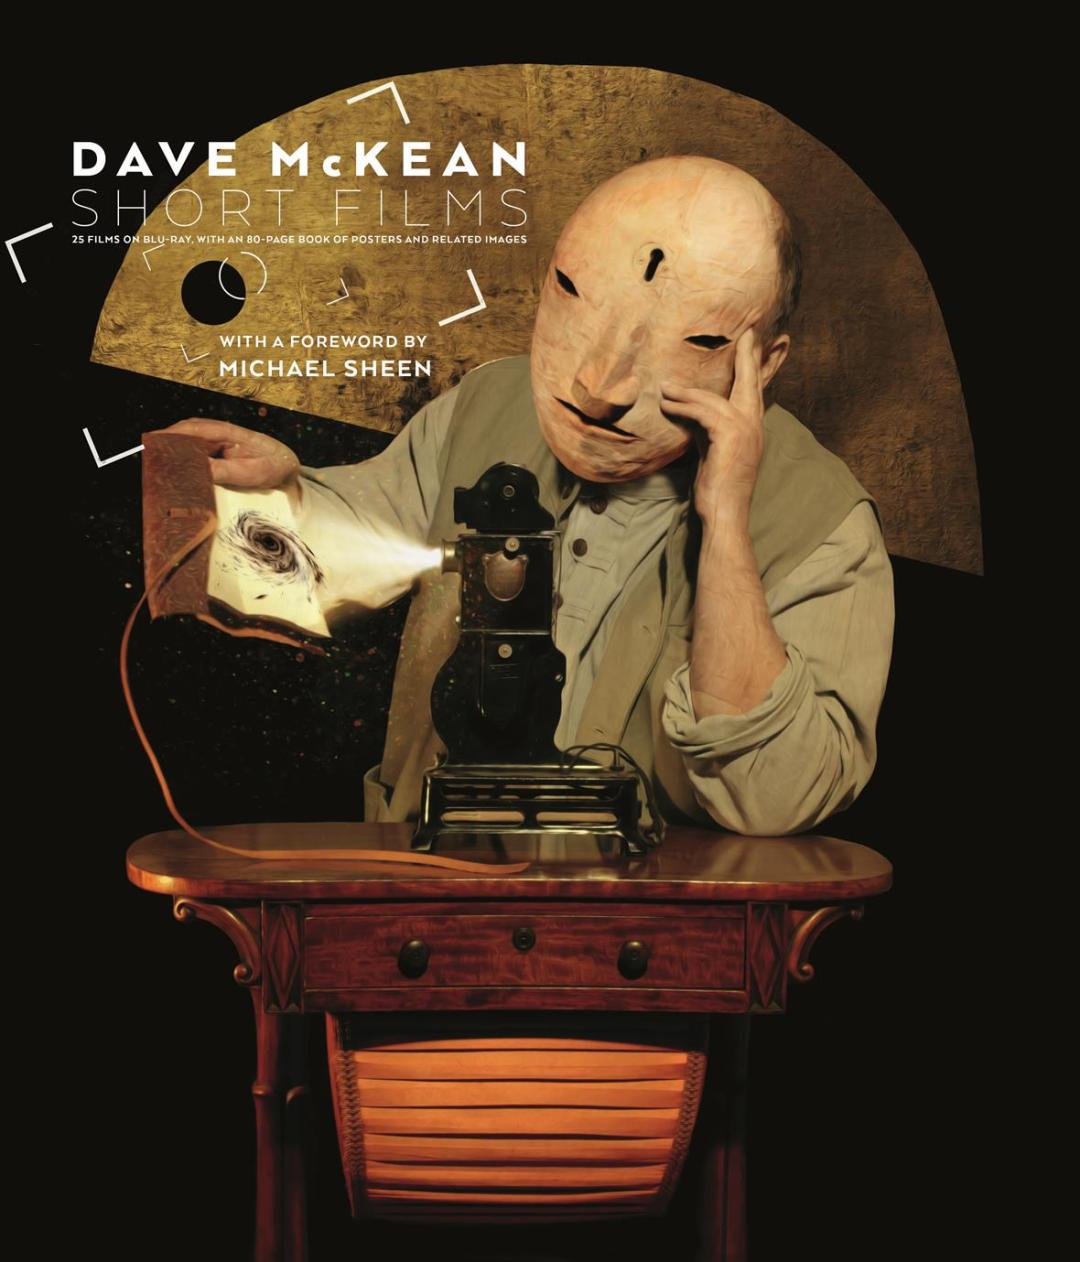 Dave McKean's Surreal Short Films Come to Dark Horse